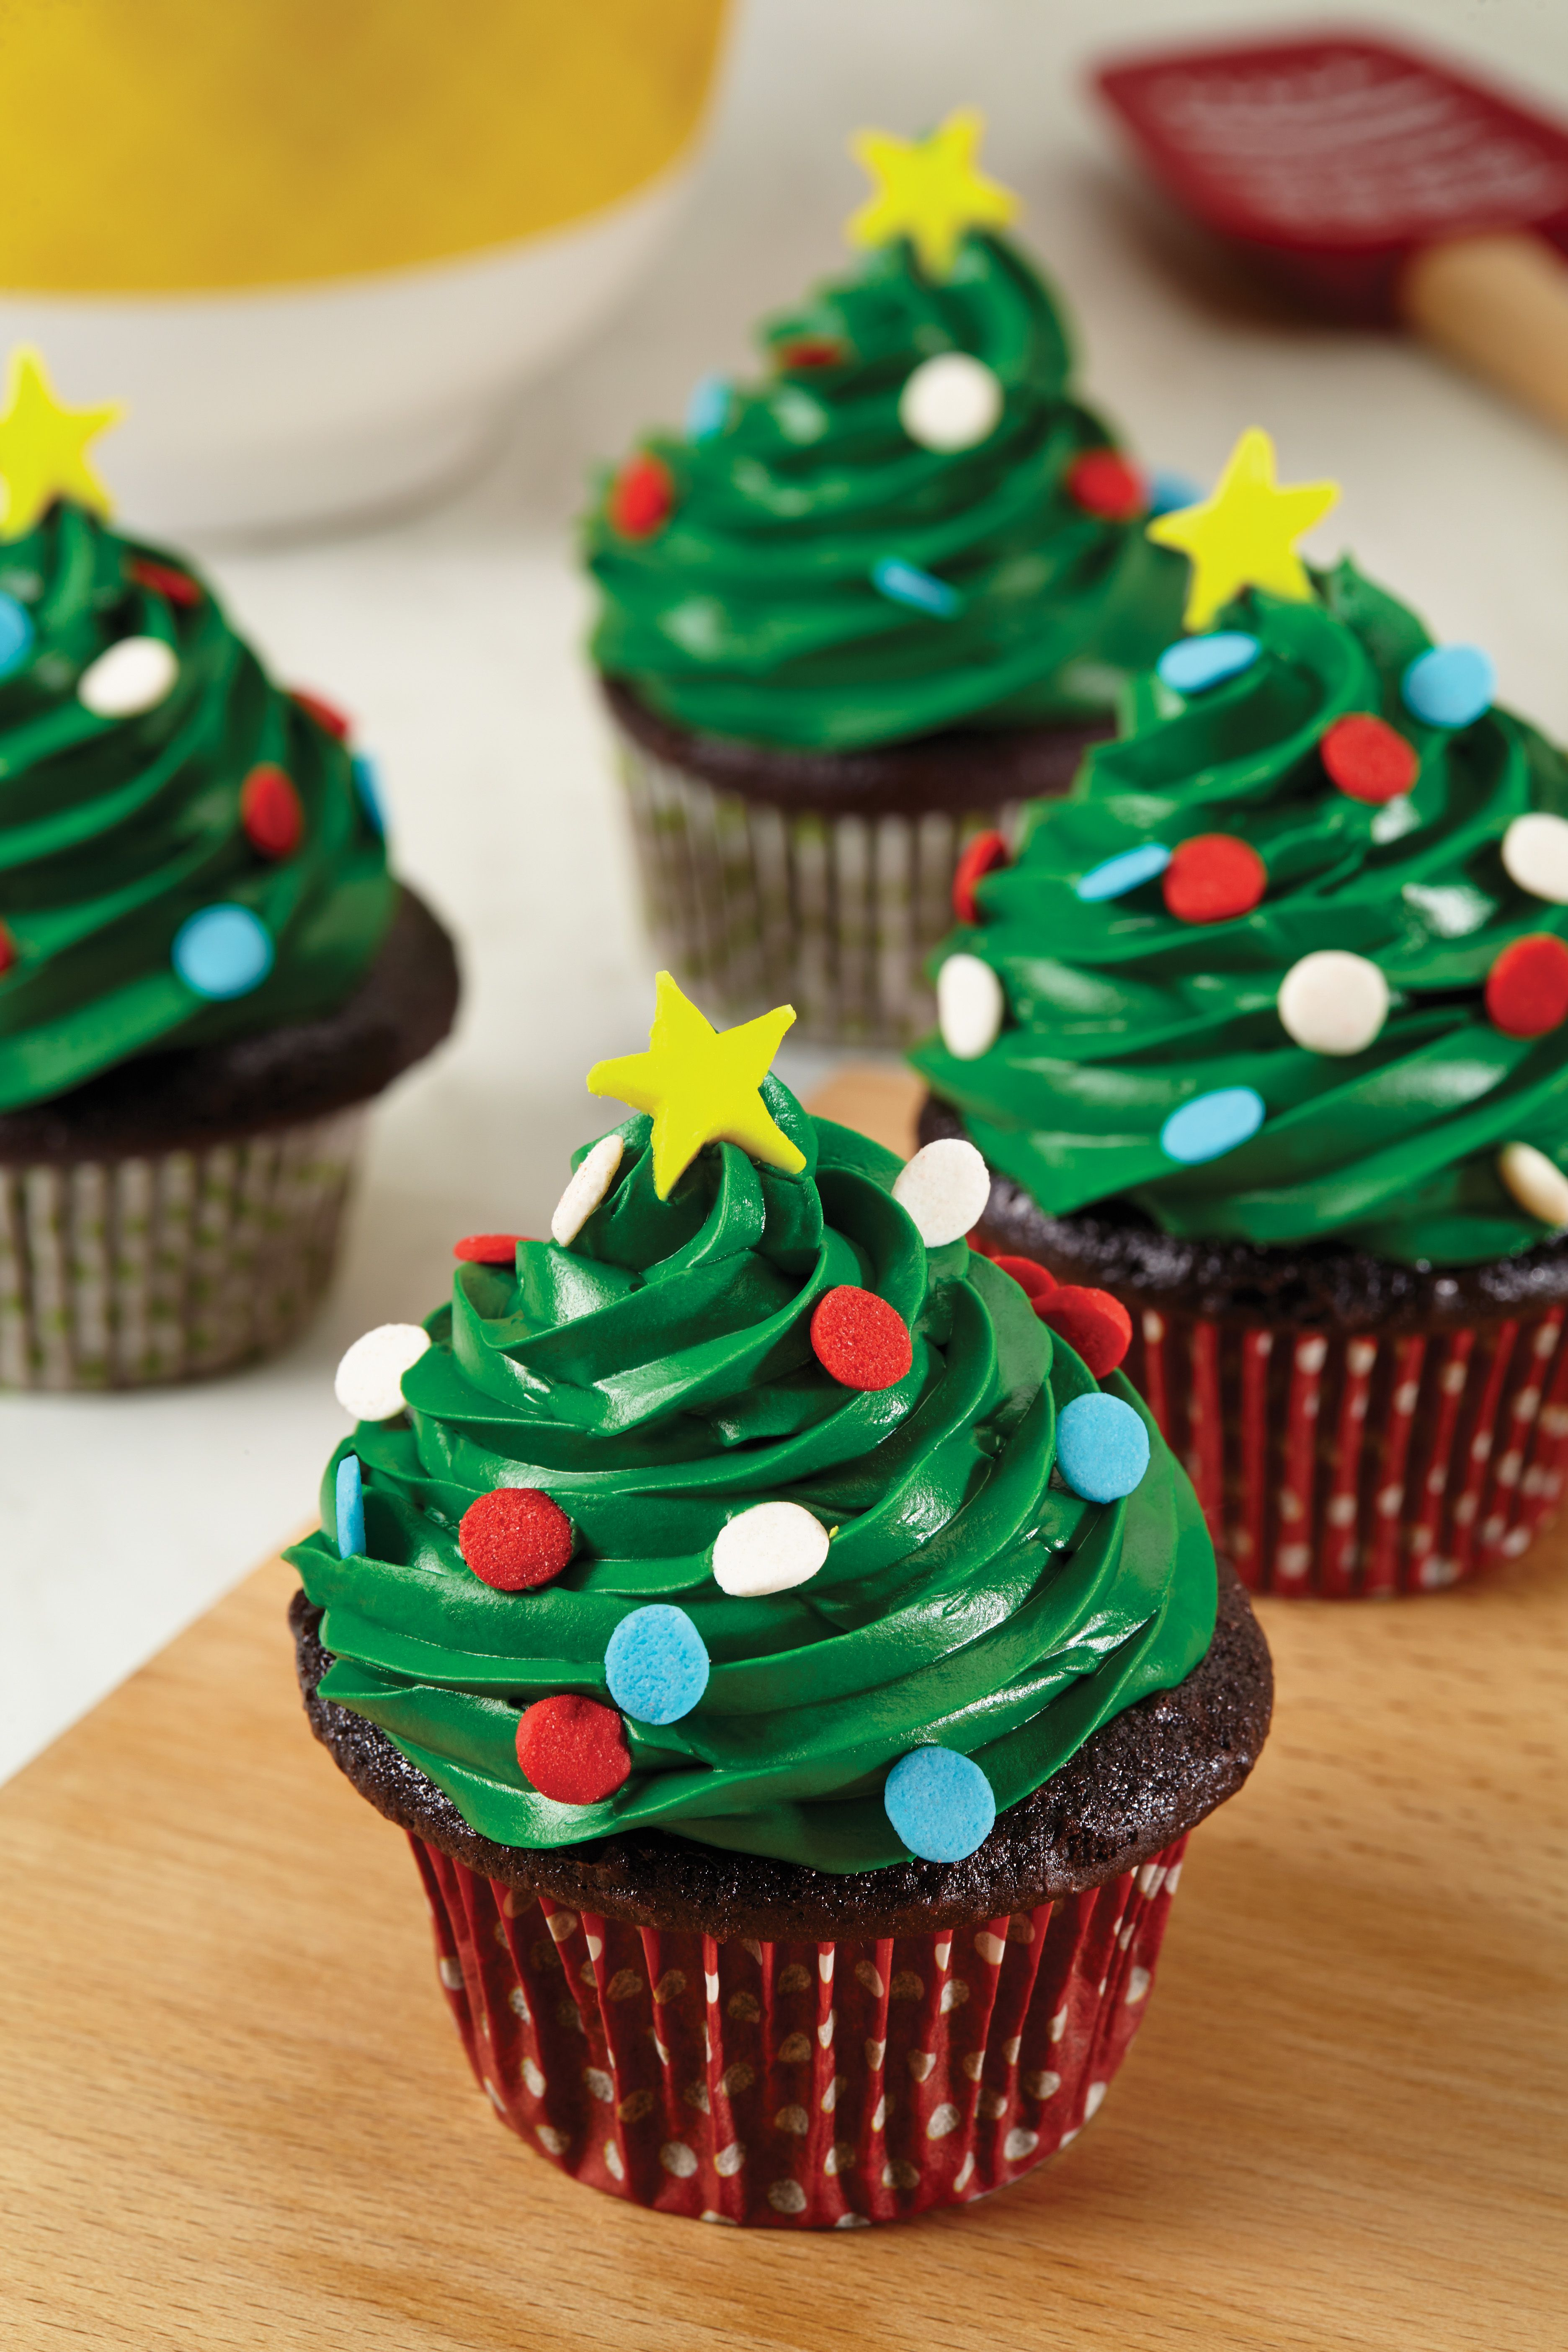 Top Chocolate Cupcakes With Festive Frosting Holiday Sprinkles And